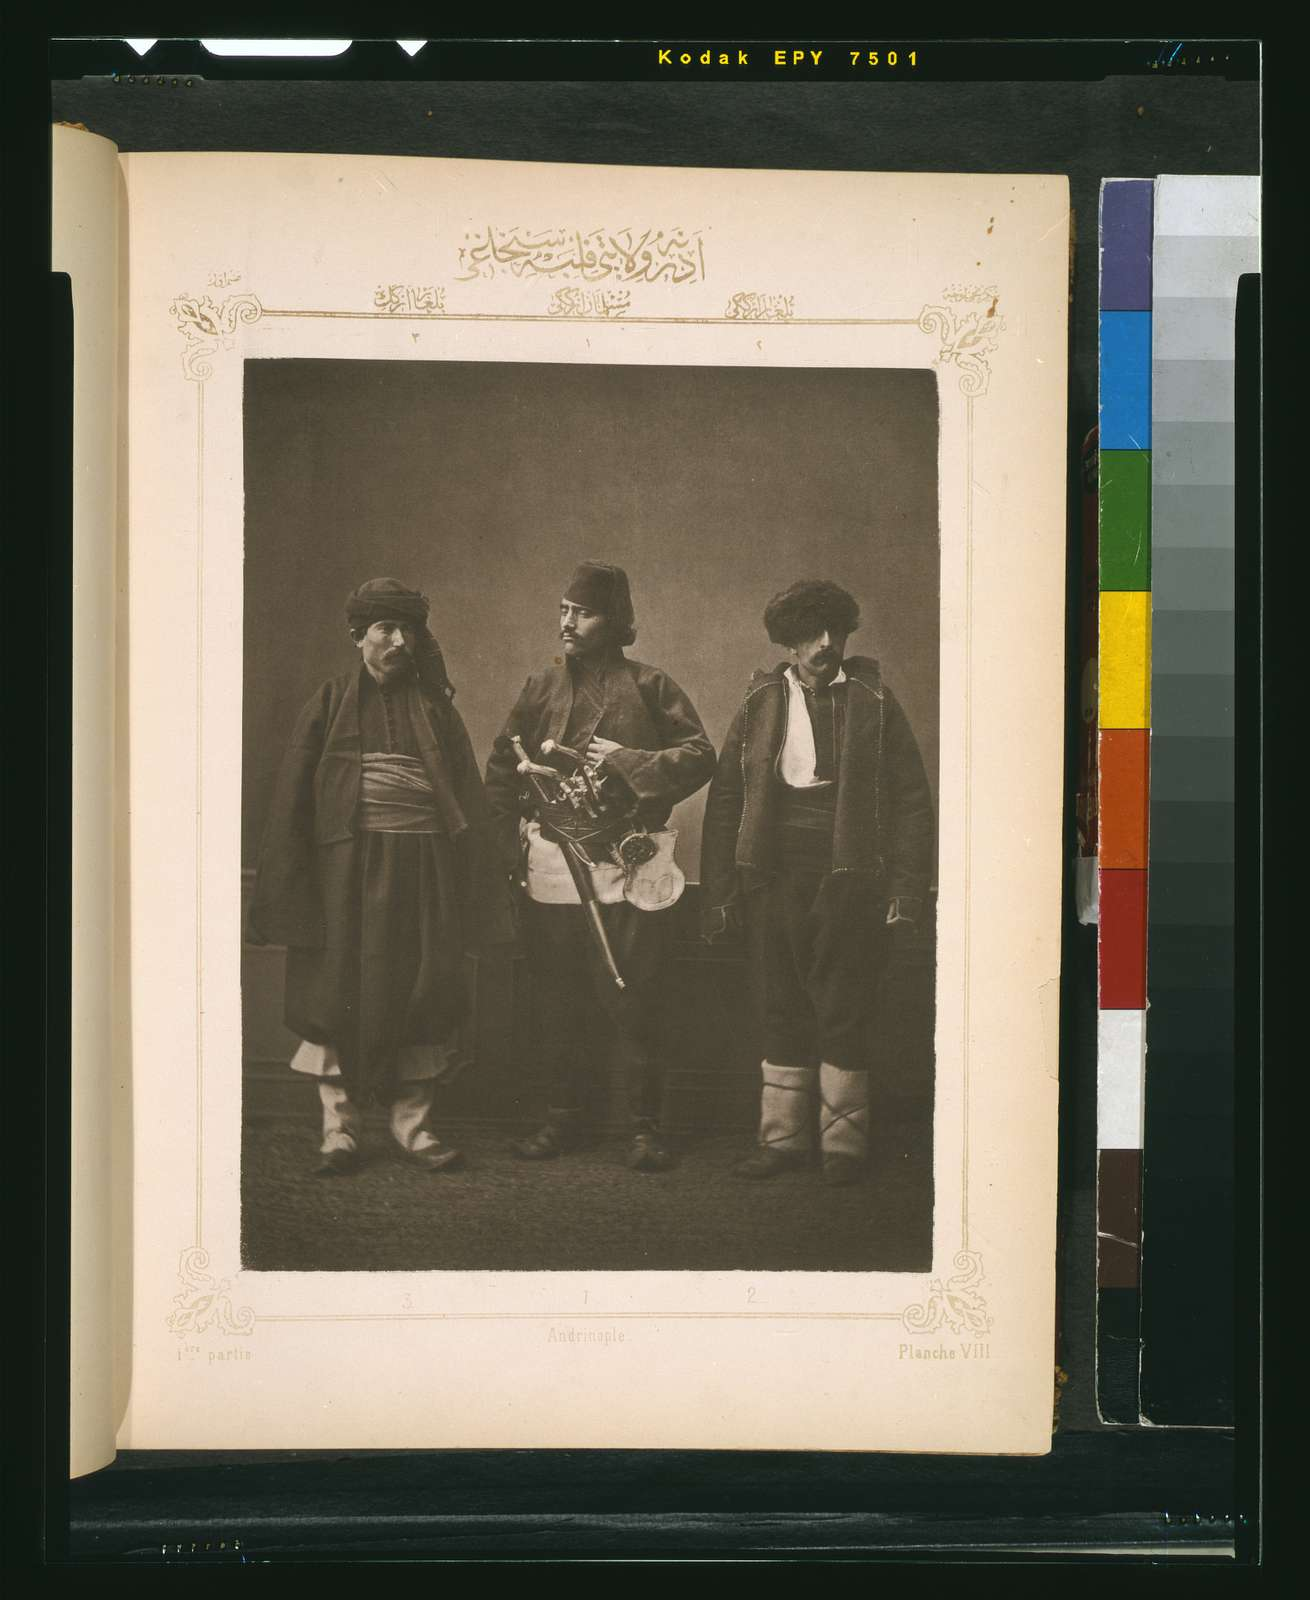 [Studio portrait of models wearing traditional clothing from the province of Andrinople (Edirne), Ottoman Empire]